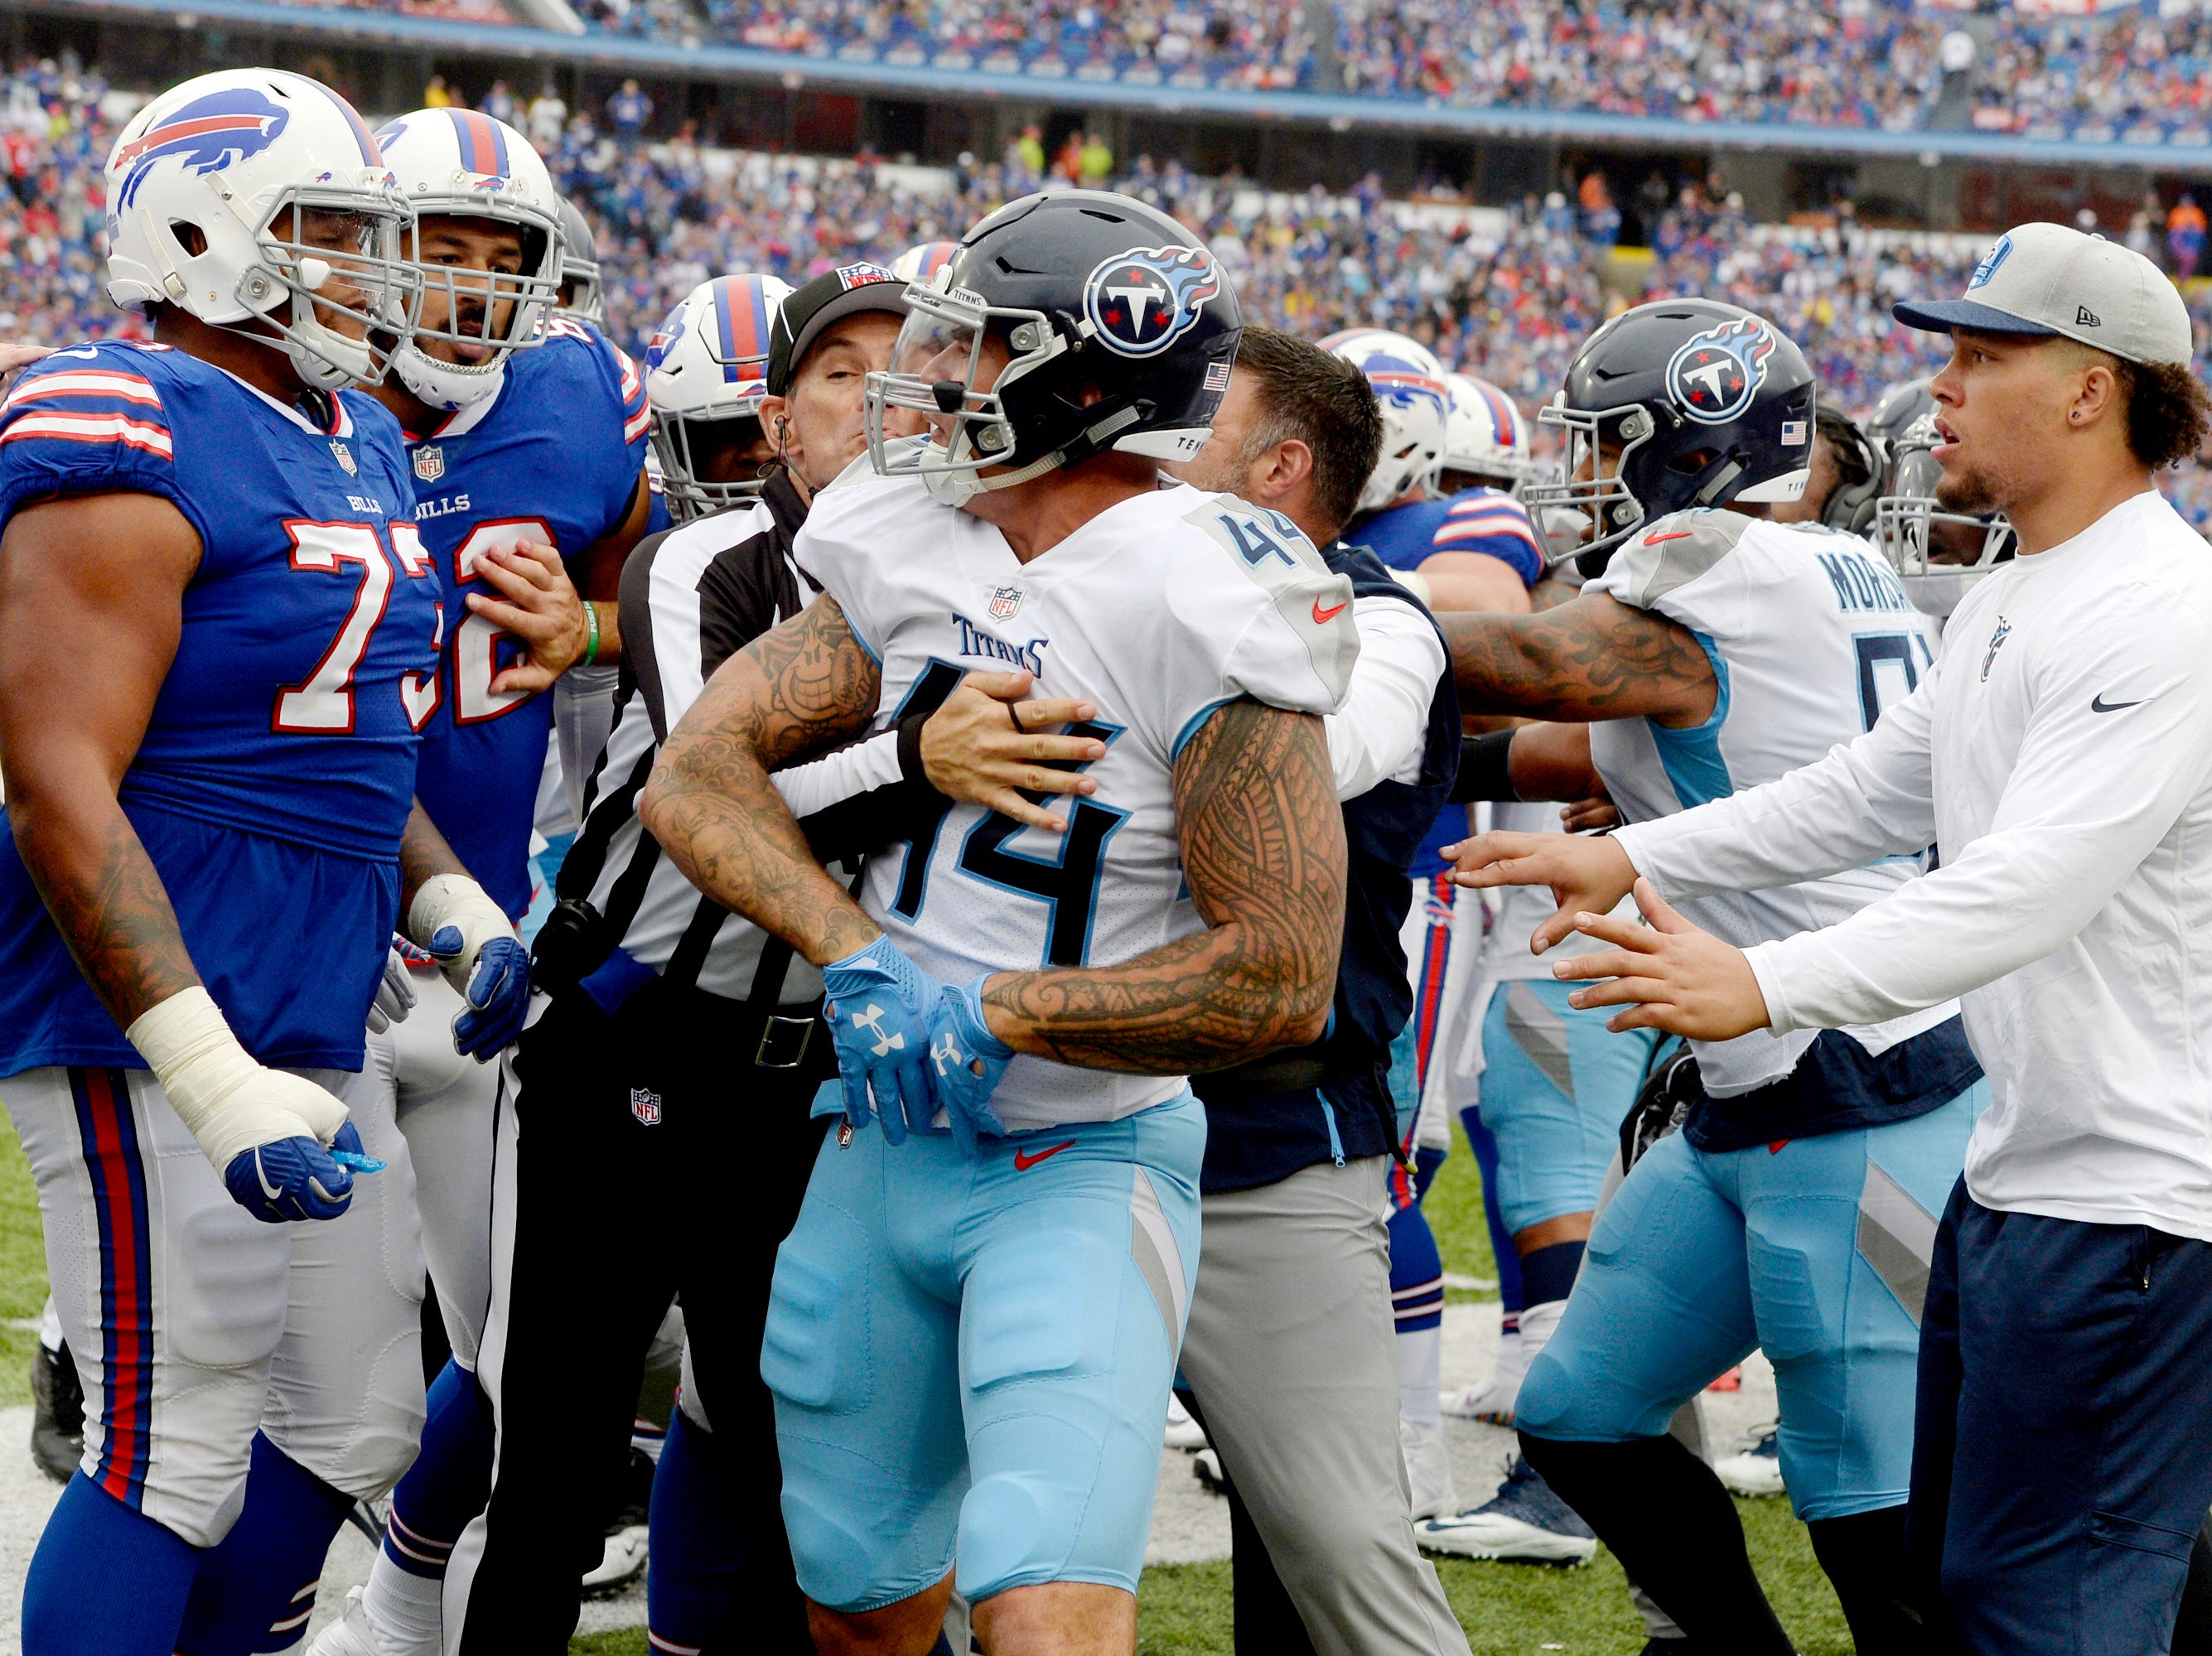 Tennessee Titans linebacker Kamalei Correa (44) is held back by head coach Mike Vrabel as he argues with Buffalo Bills offensive tackle Dion Dawkins (73) during the second half of an NFL football game, Sunday, Oct. 7, 2018, in Orchard Park, N.Y. (AP Photo/Adrian Kraus)